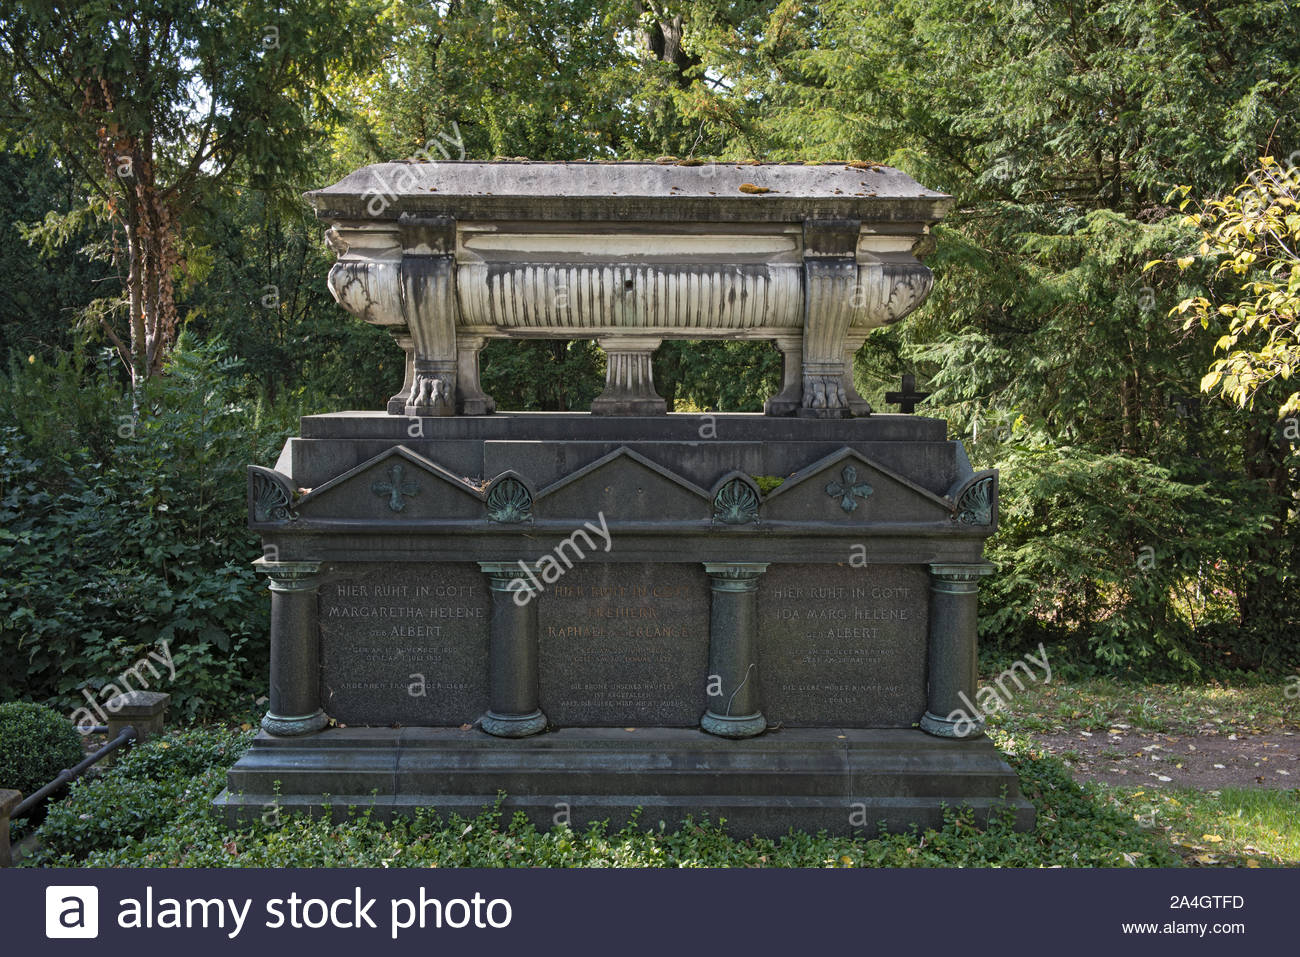 monuments and tombstones on the main cemetery in frankfurt main germany 2A4GTFD